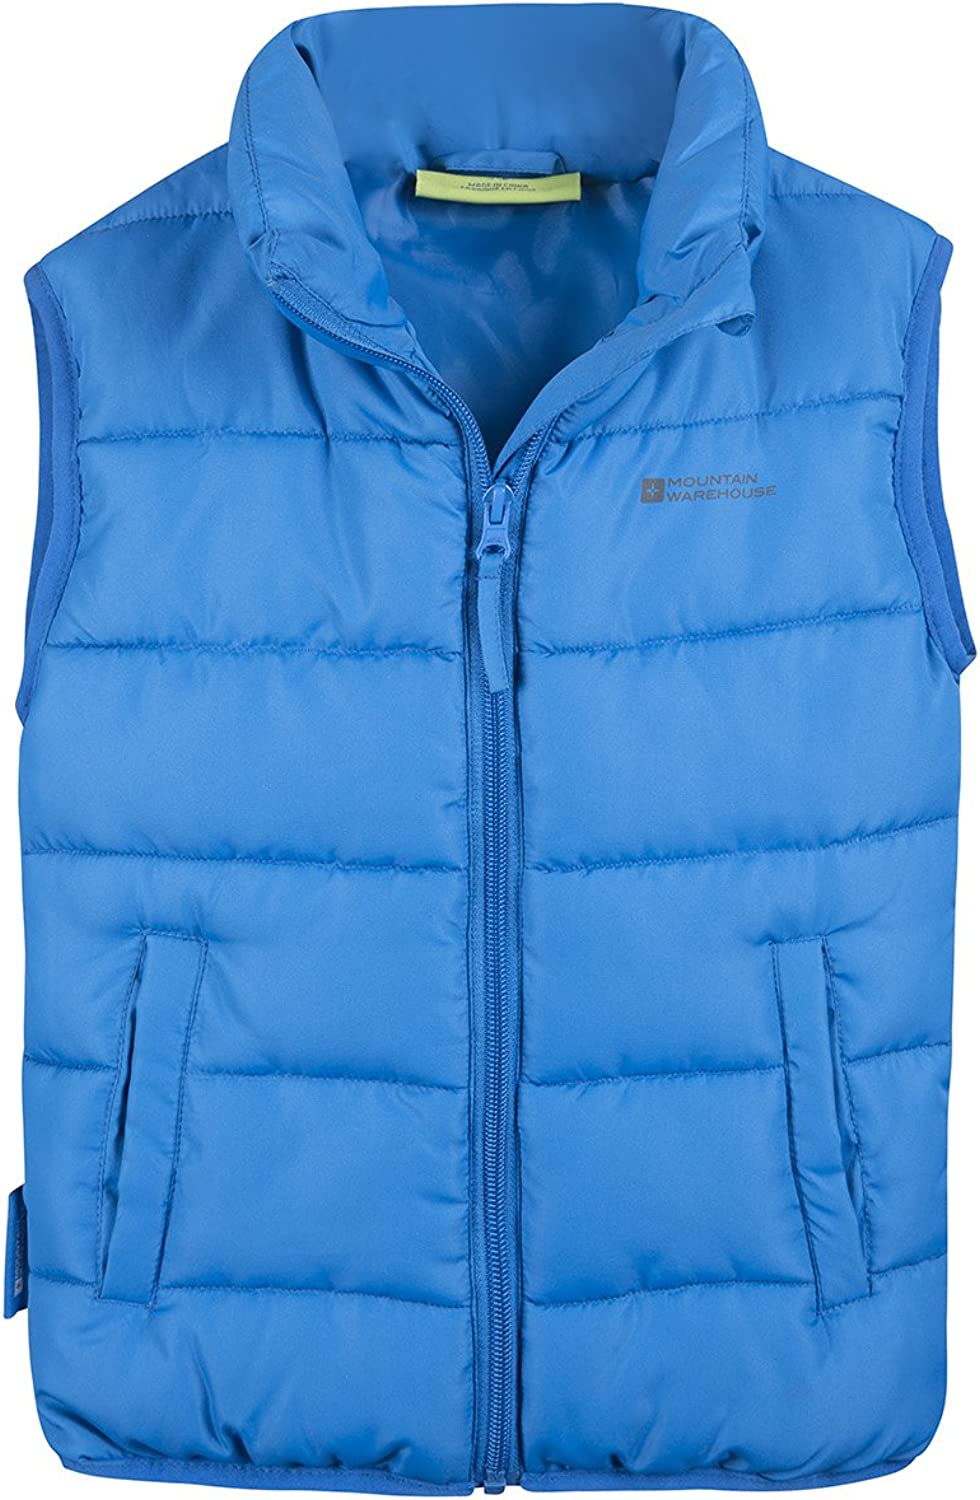 Mountain Warehouse Mens Down Padded Vest Gilet with Water-Resistant Fabric